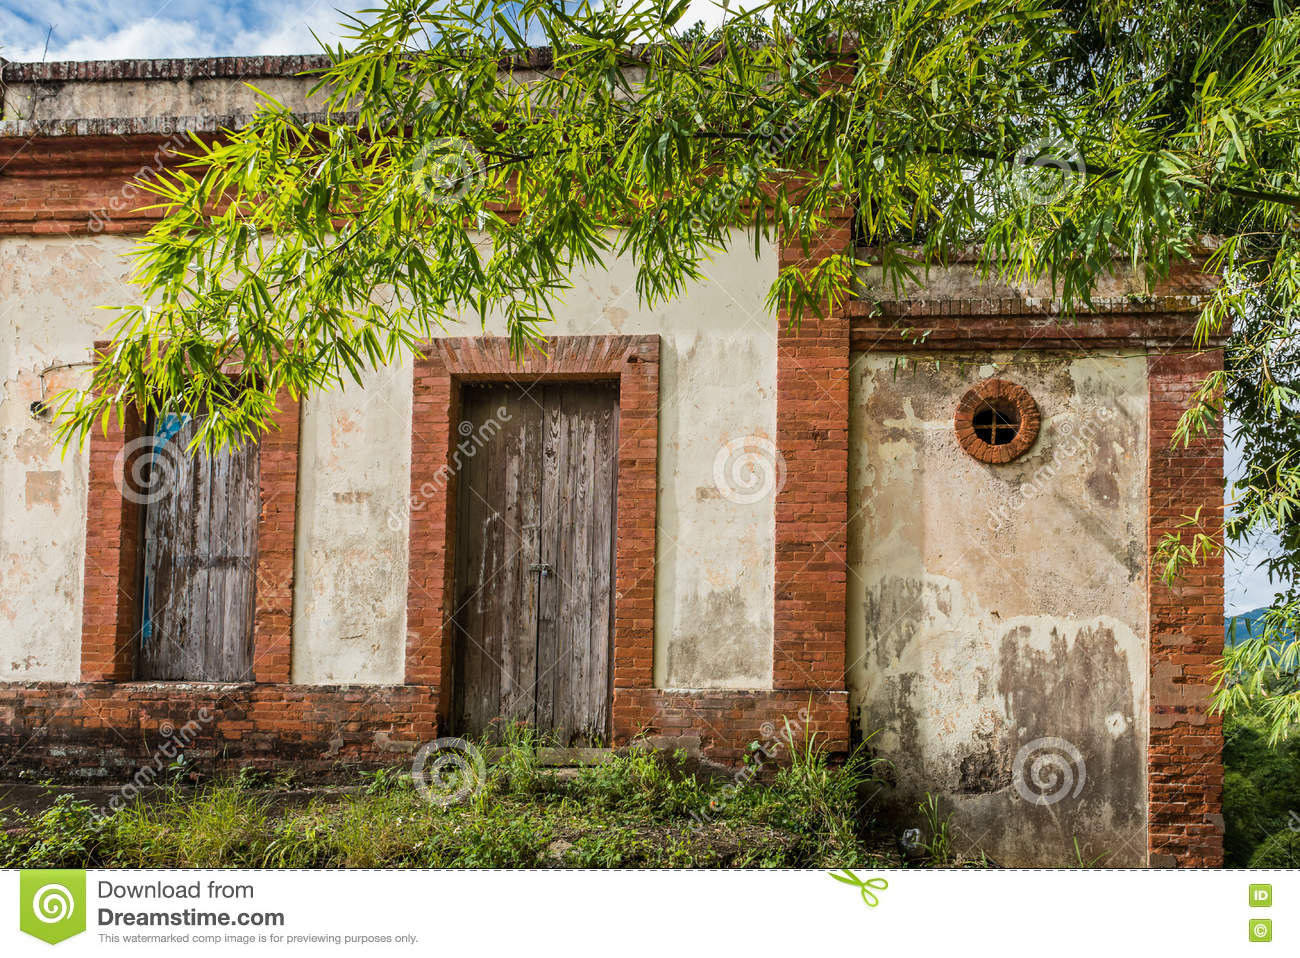 Brick and concrete structure along the road with old wooden door